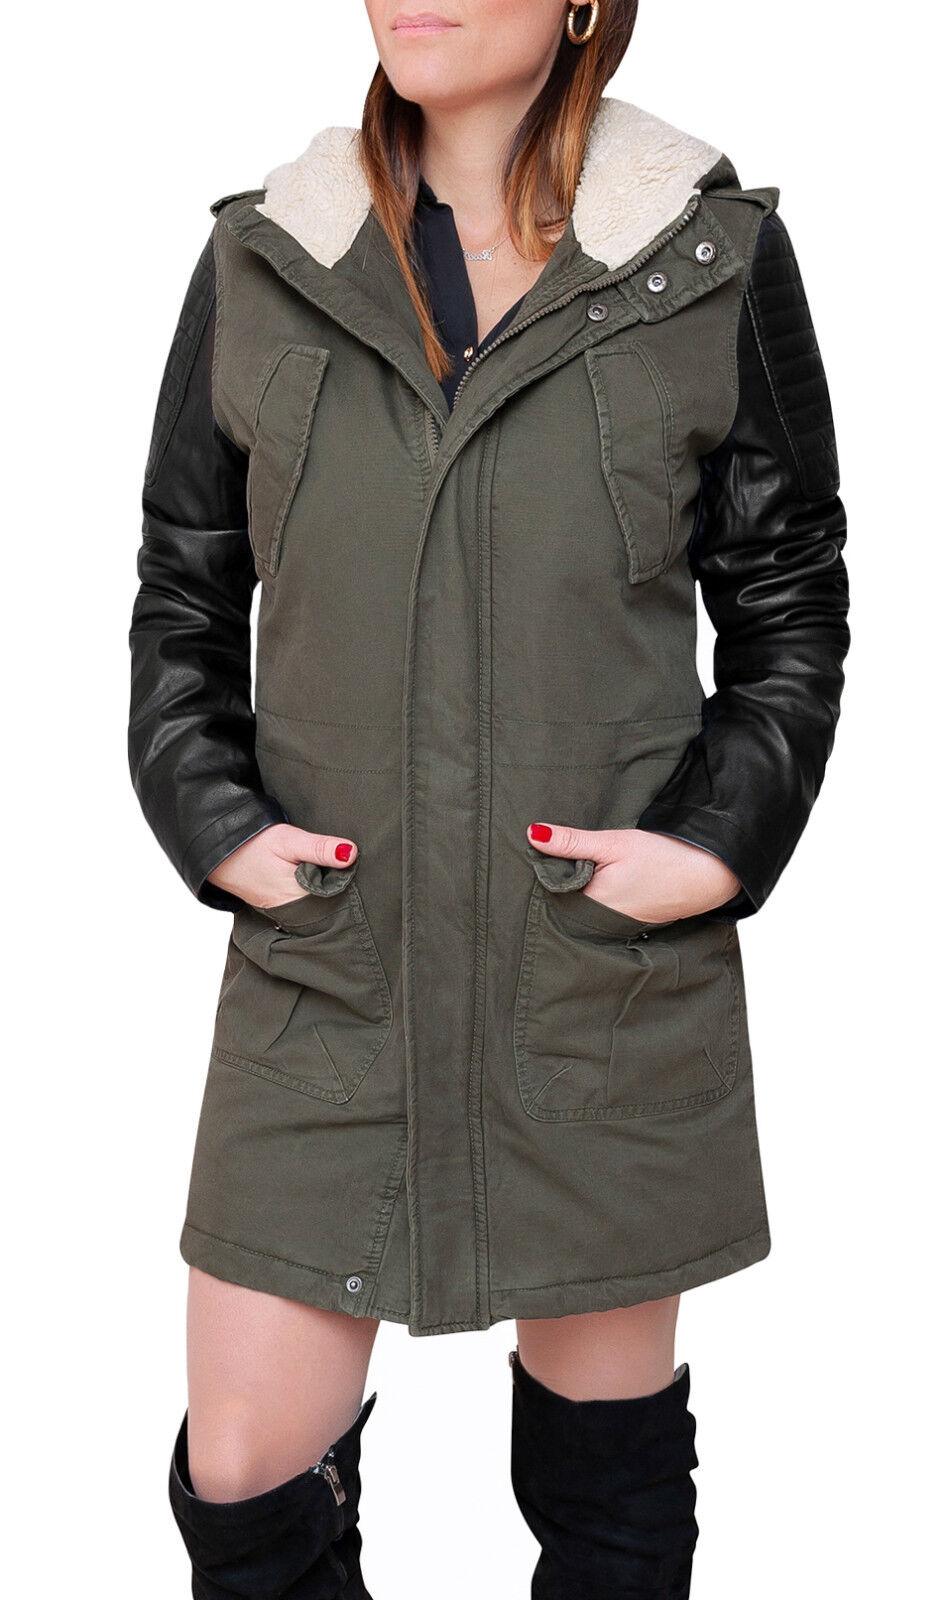 online store 0b7e6 9a9c1 Parka donna Diamond invernale verde casual giacca trench con ...